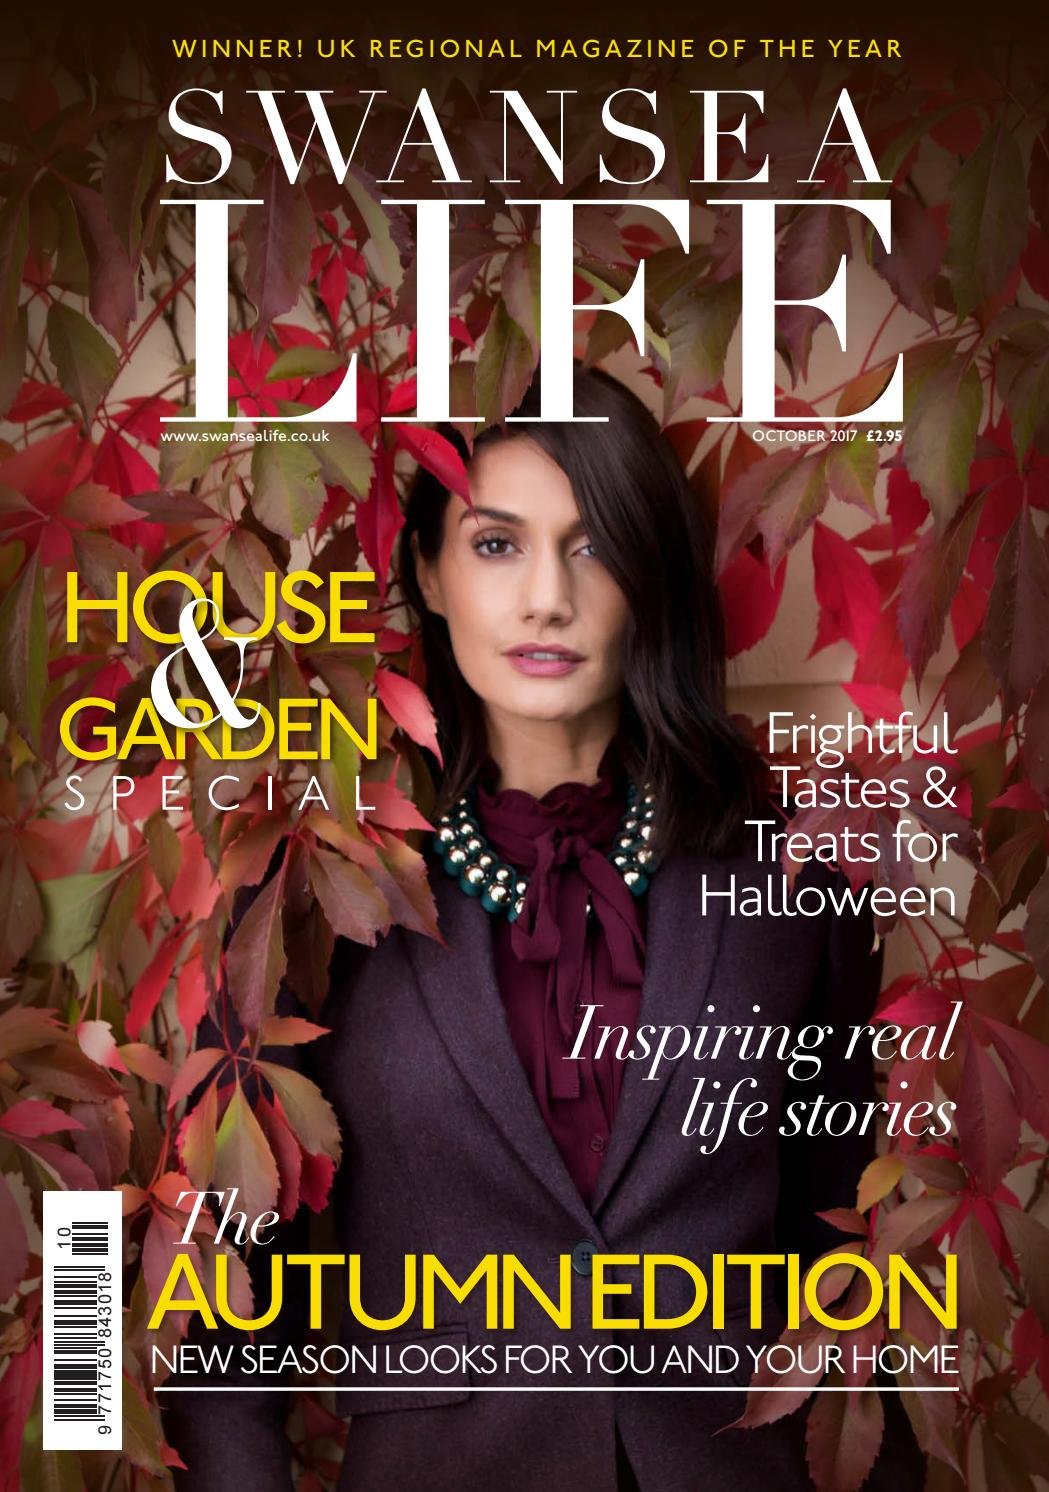 f56fdfc8739 Swansea Life October 2017 by Swansea Life - issuu